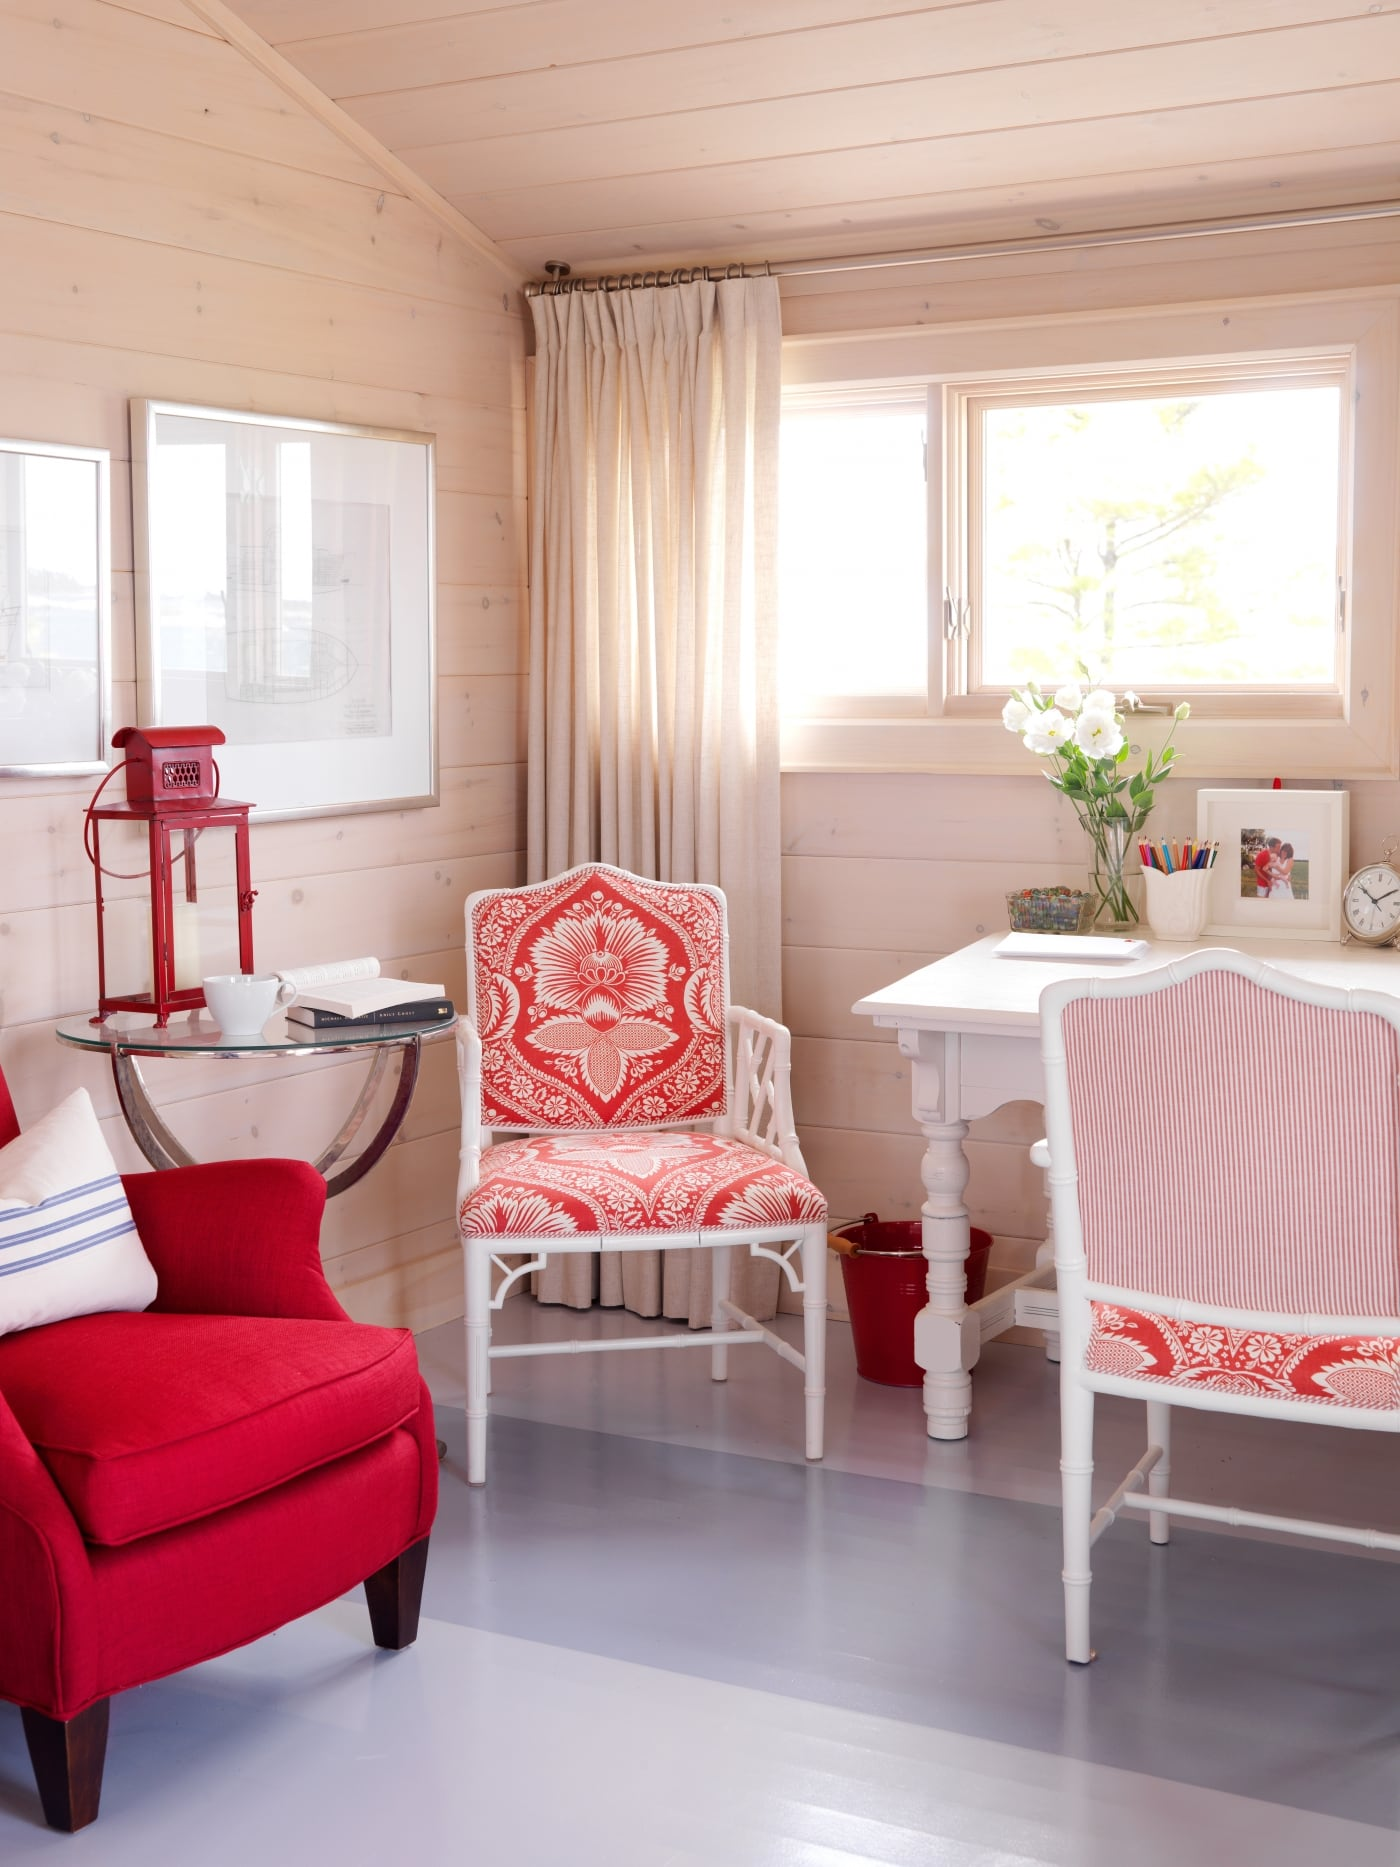 Whitewashed knotty pine paneling and painted stripes on floor in bedroom with pink